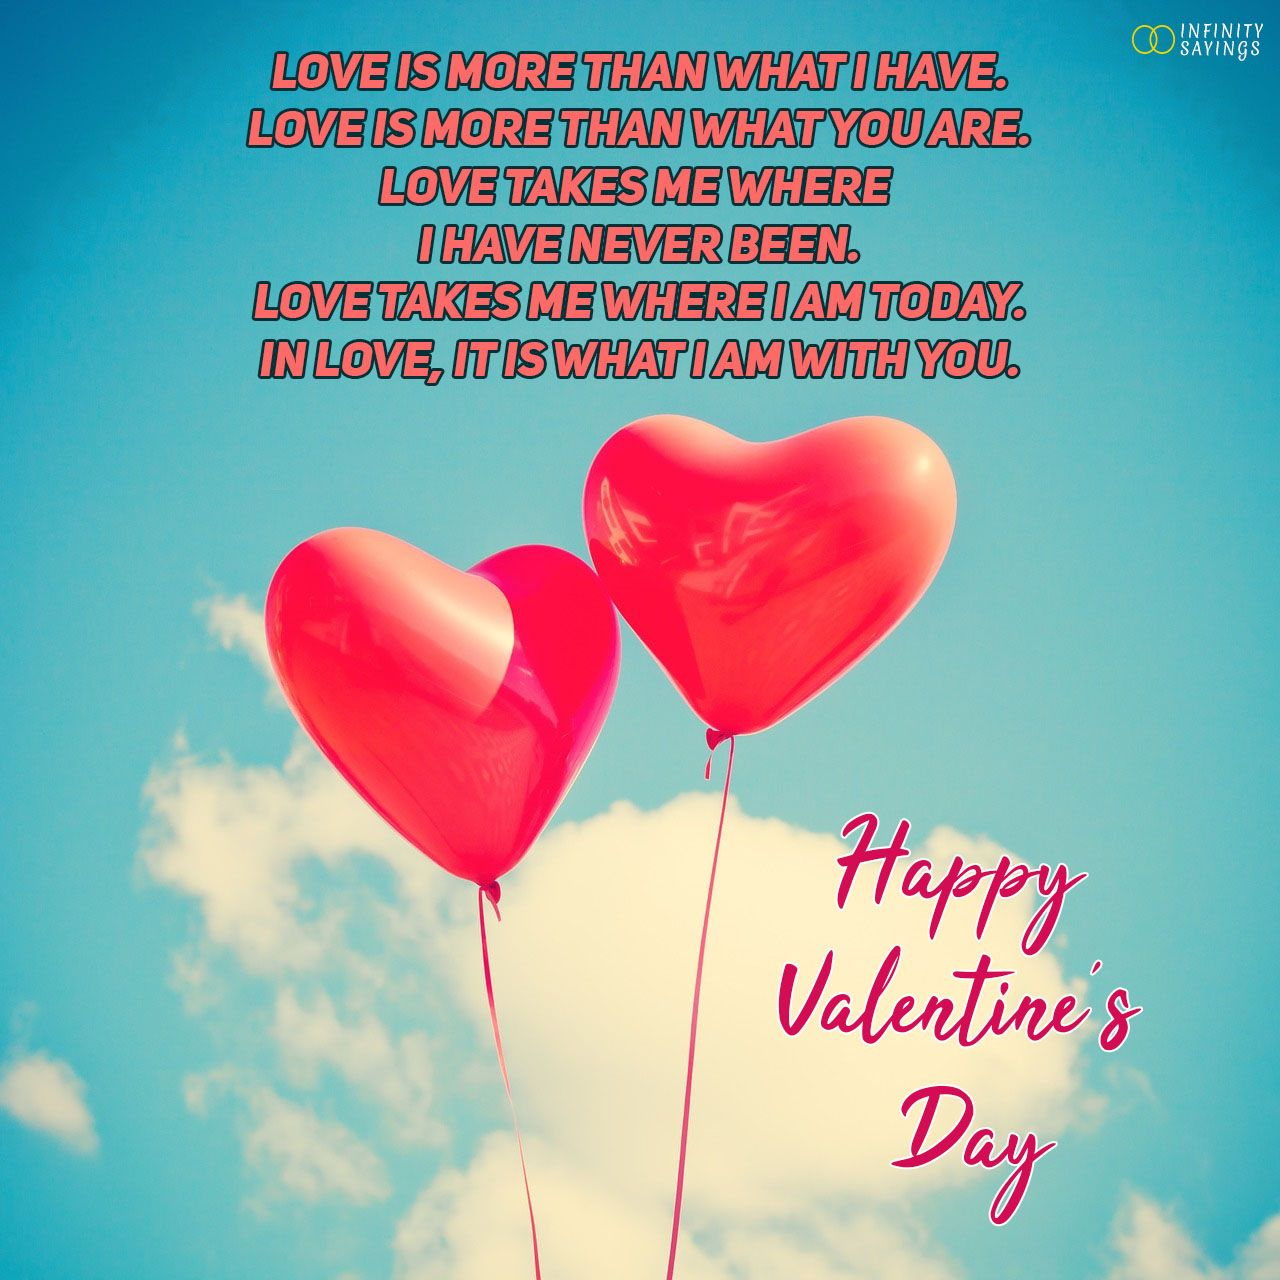 Happy Valentine's Day 2019 Wishes Greetings Status for